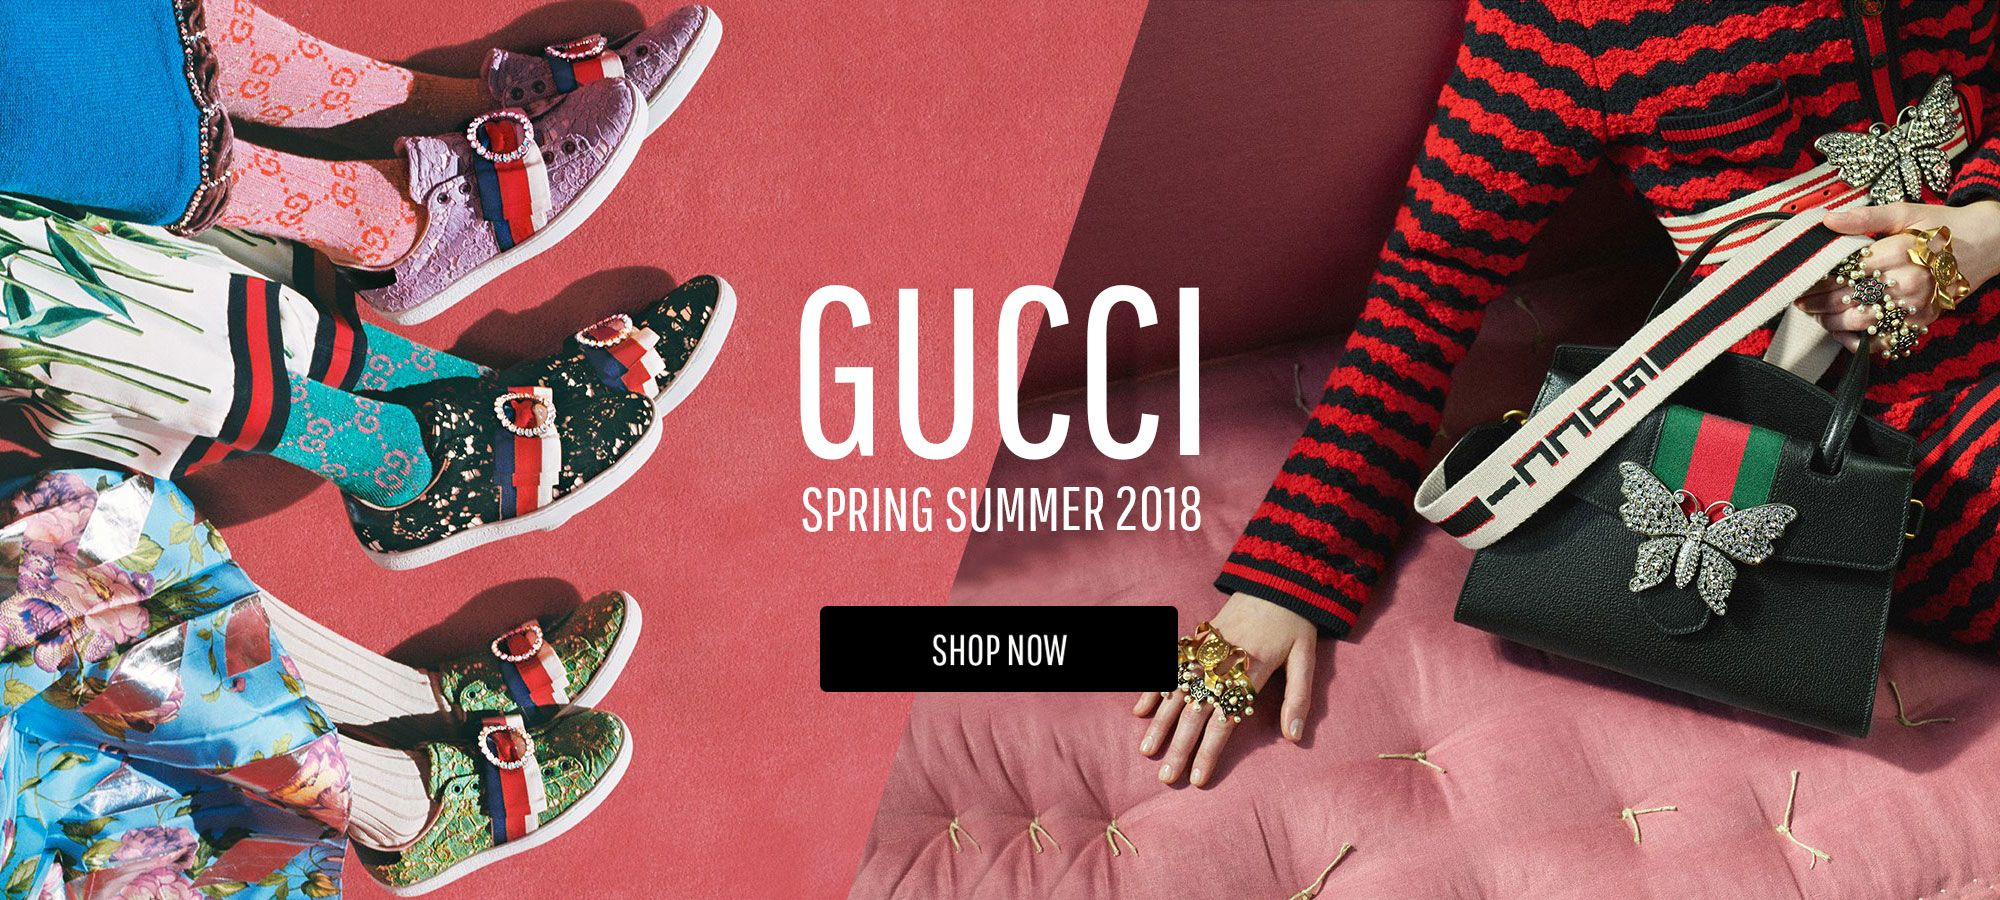 Gucci Women - Spring Summer 2018